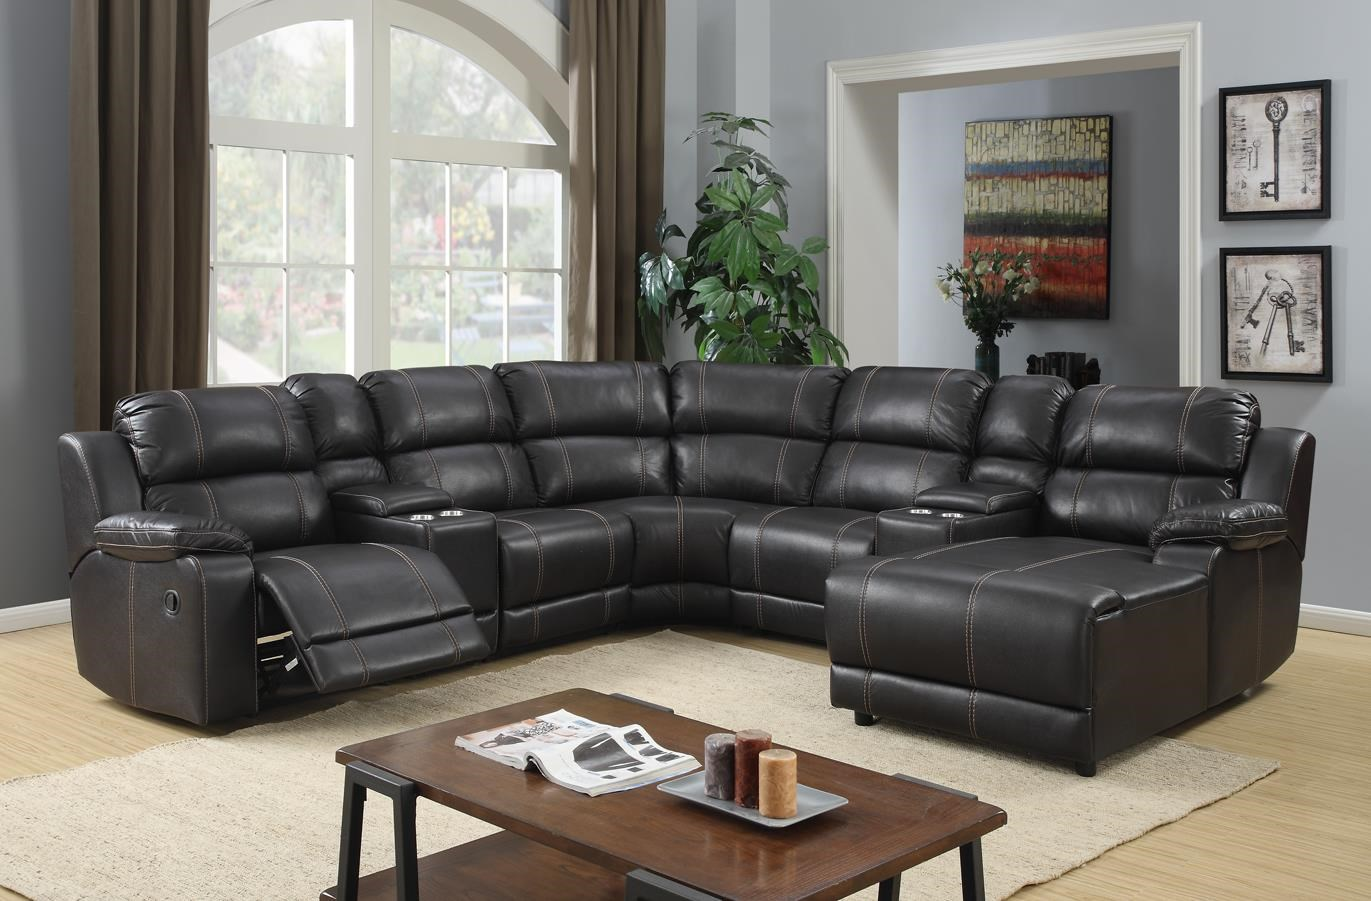 Vogue Home Furnishings PX2212 7 Piece Sectional   Item Number: PX2212